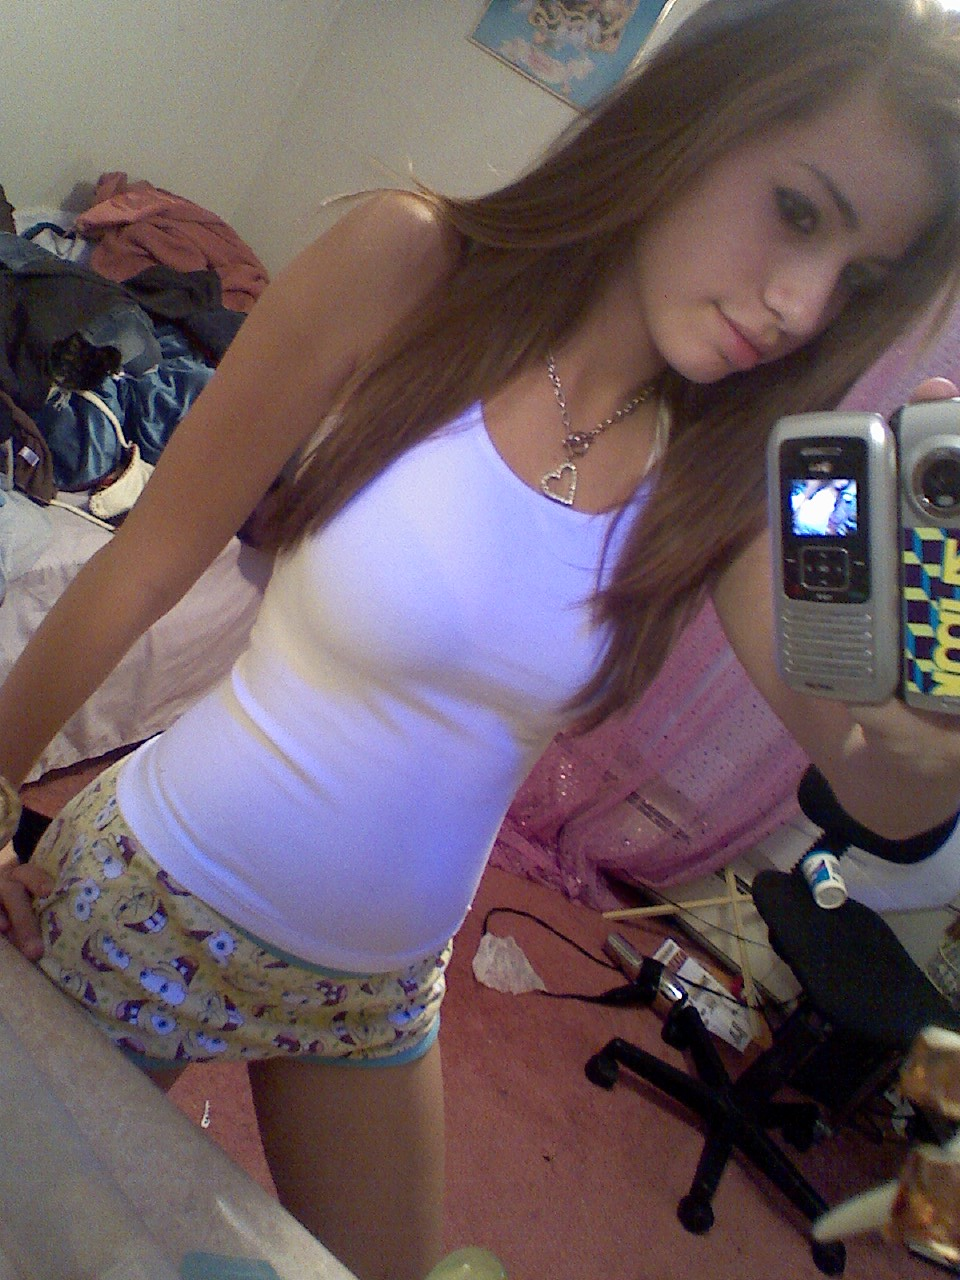 Amateur 51 years old married woman love stocking 4